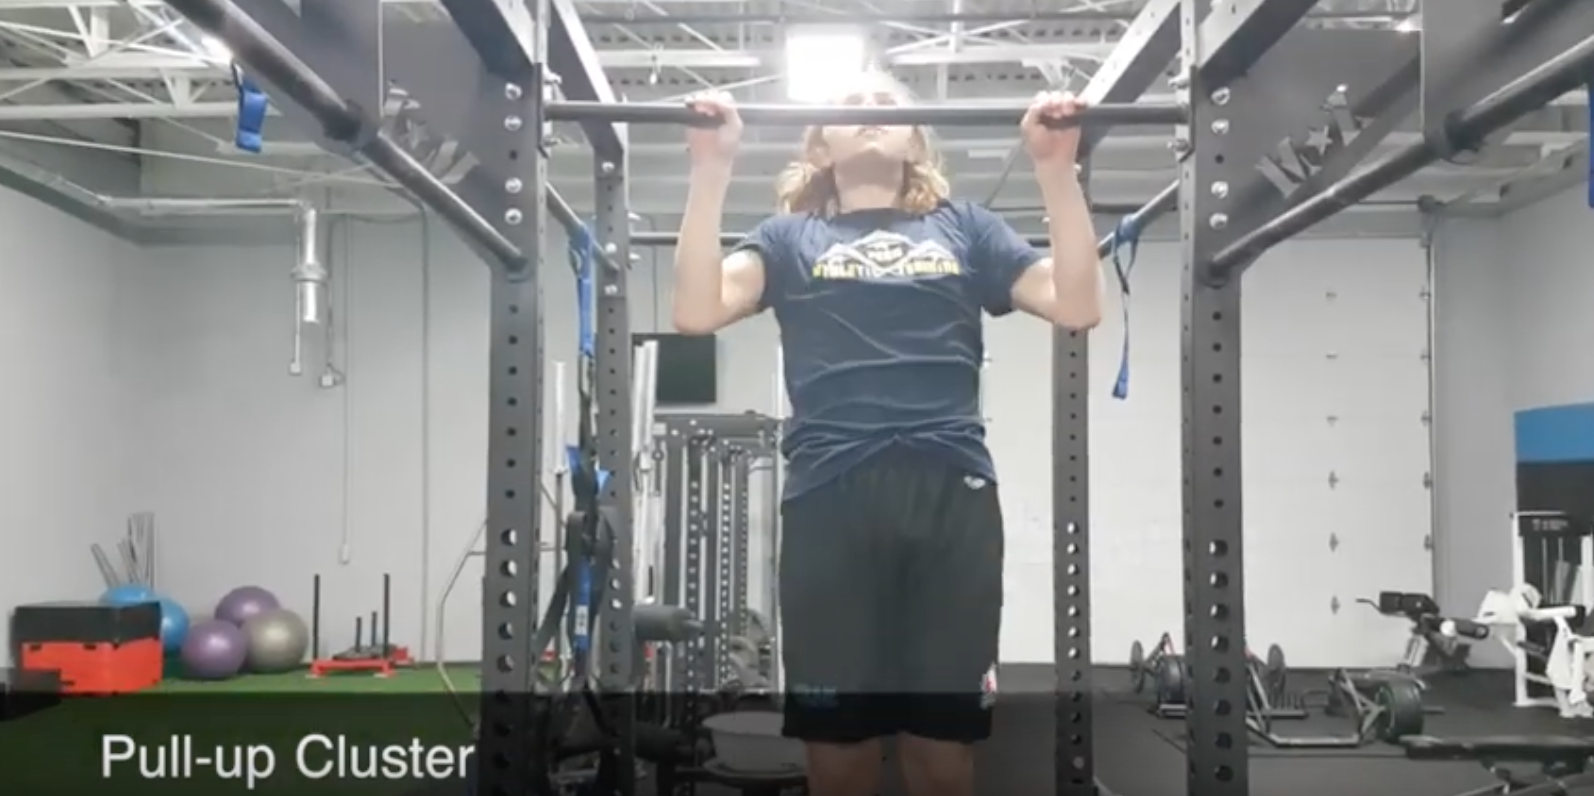 Do you struggle with Pull-ups?